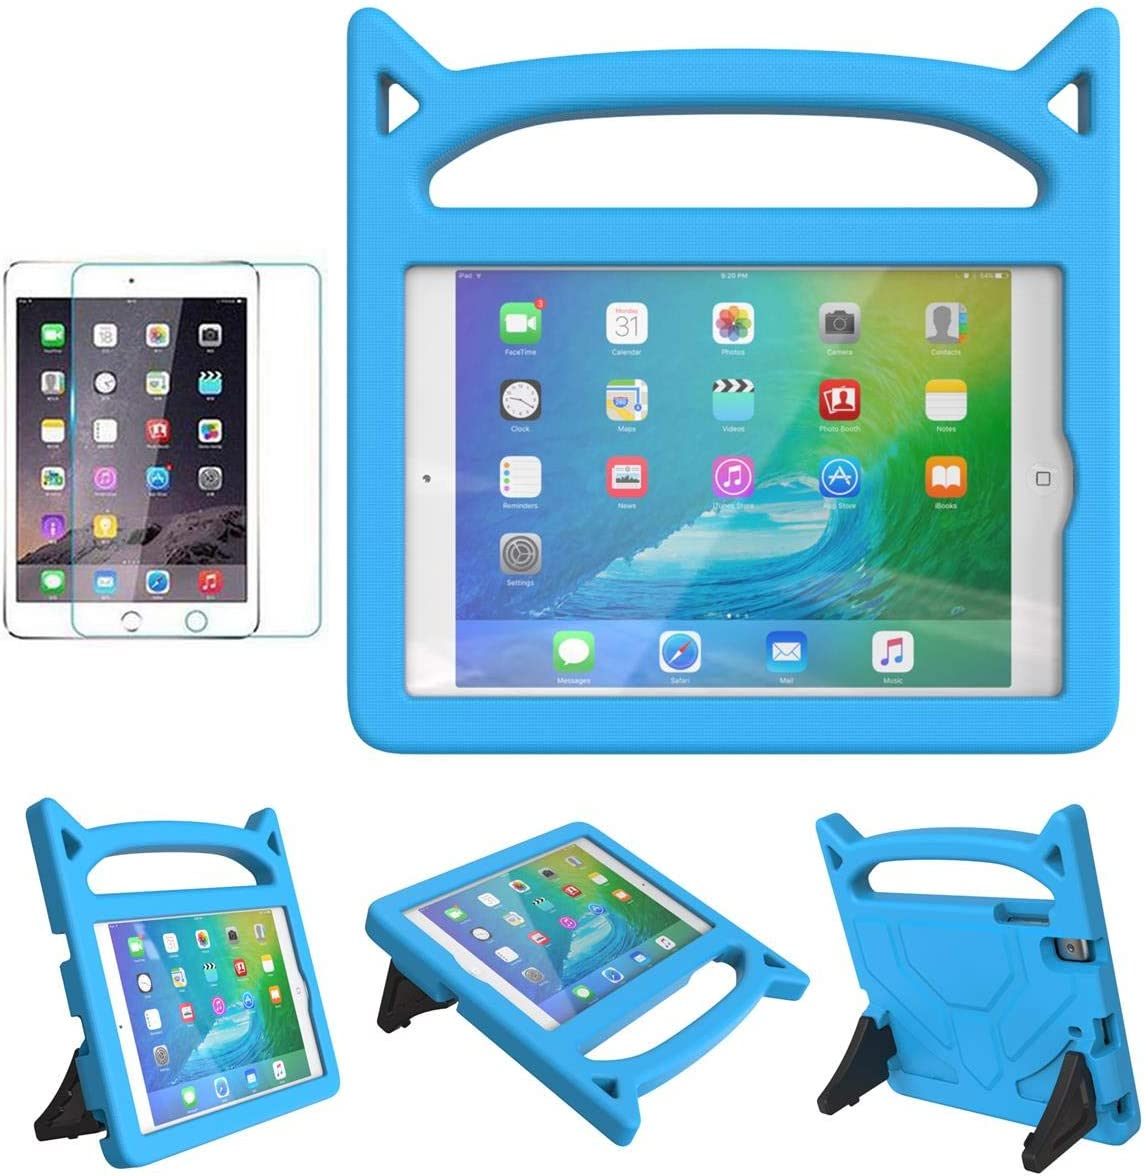 MOXOTEK Kids Case for iPad Mini 1 2 3 4 5, Cute Durable Shockproof Protective Handle Stand Case with Screen Protector for Apple 7.9 inch iPad Mini 5th (2019),4th,3rd,2nd,1st Generation, Blue